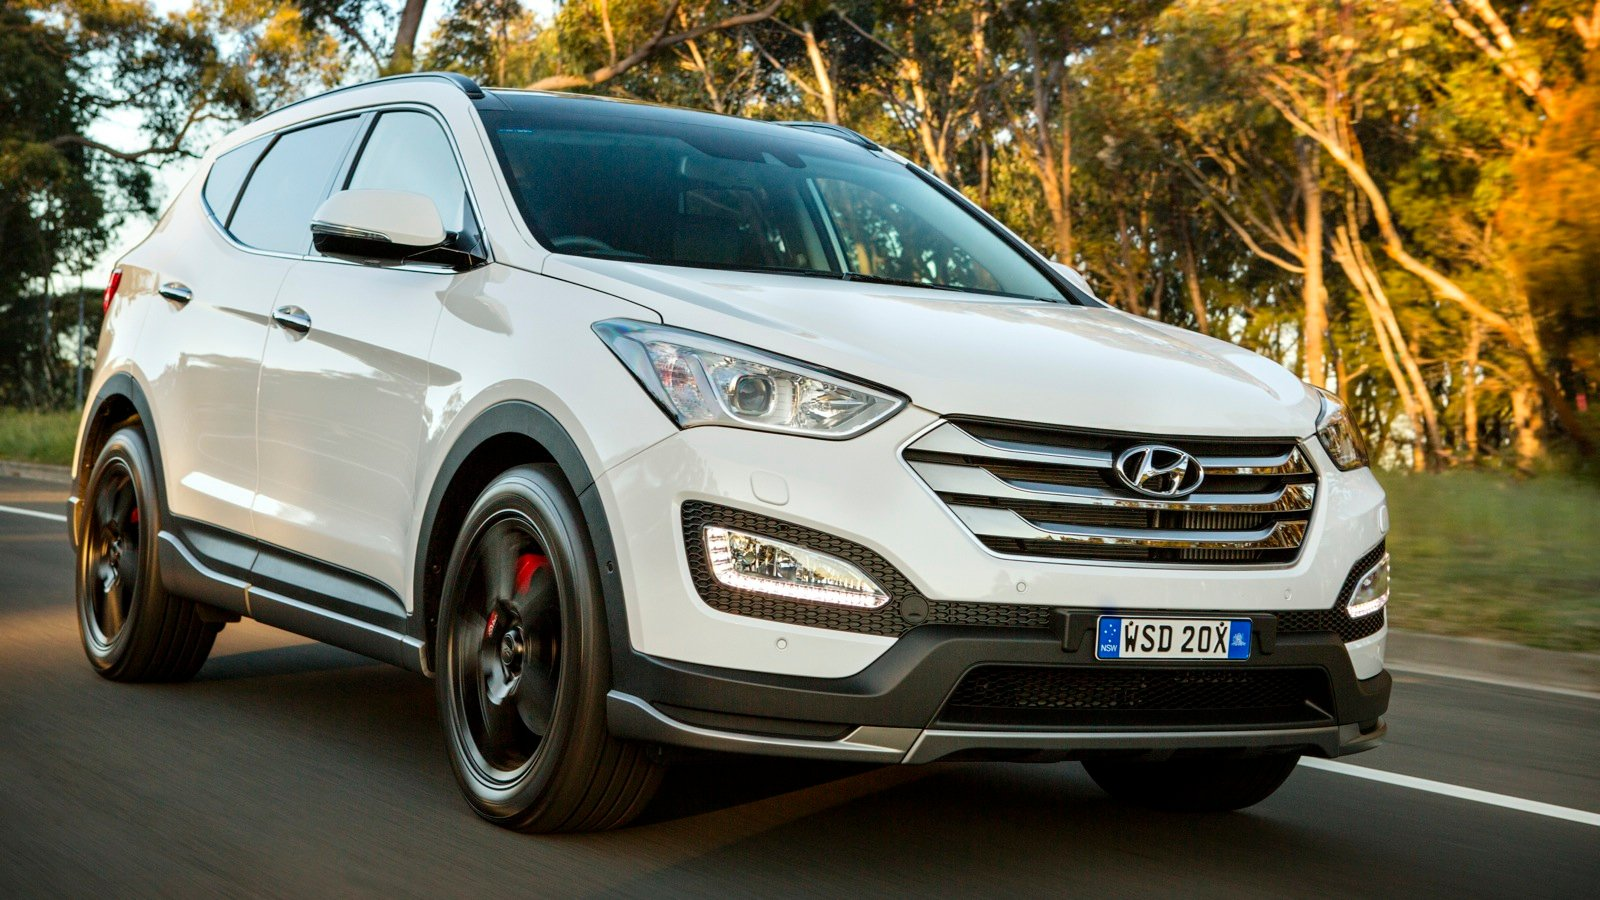 2015 hyundai santa fe sr review caradvice. Black Bedroom Furniture Sets. Home Design Ideas